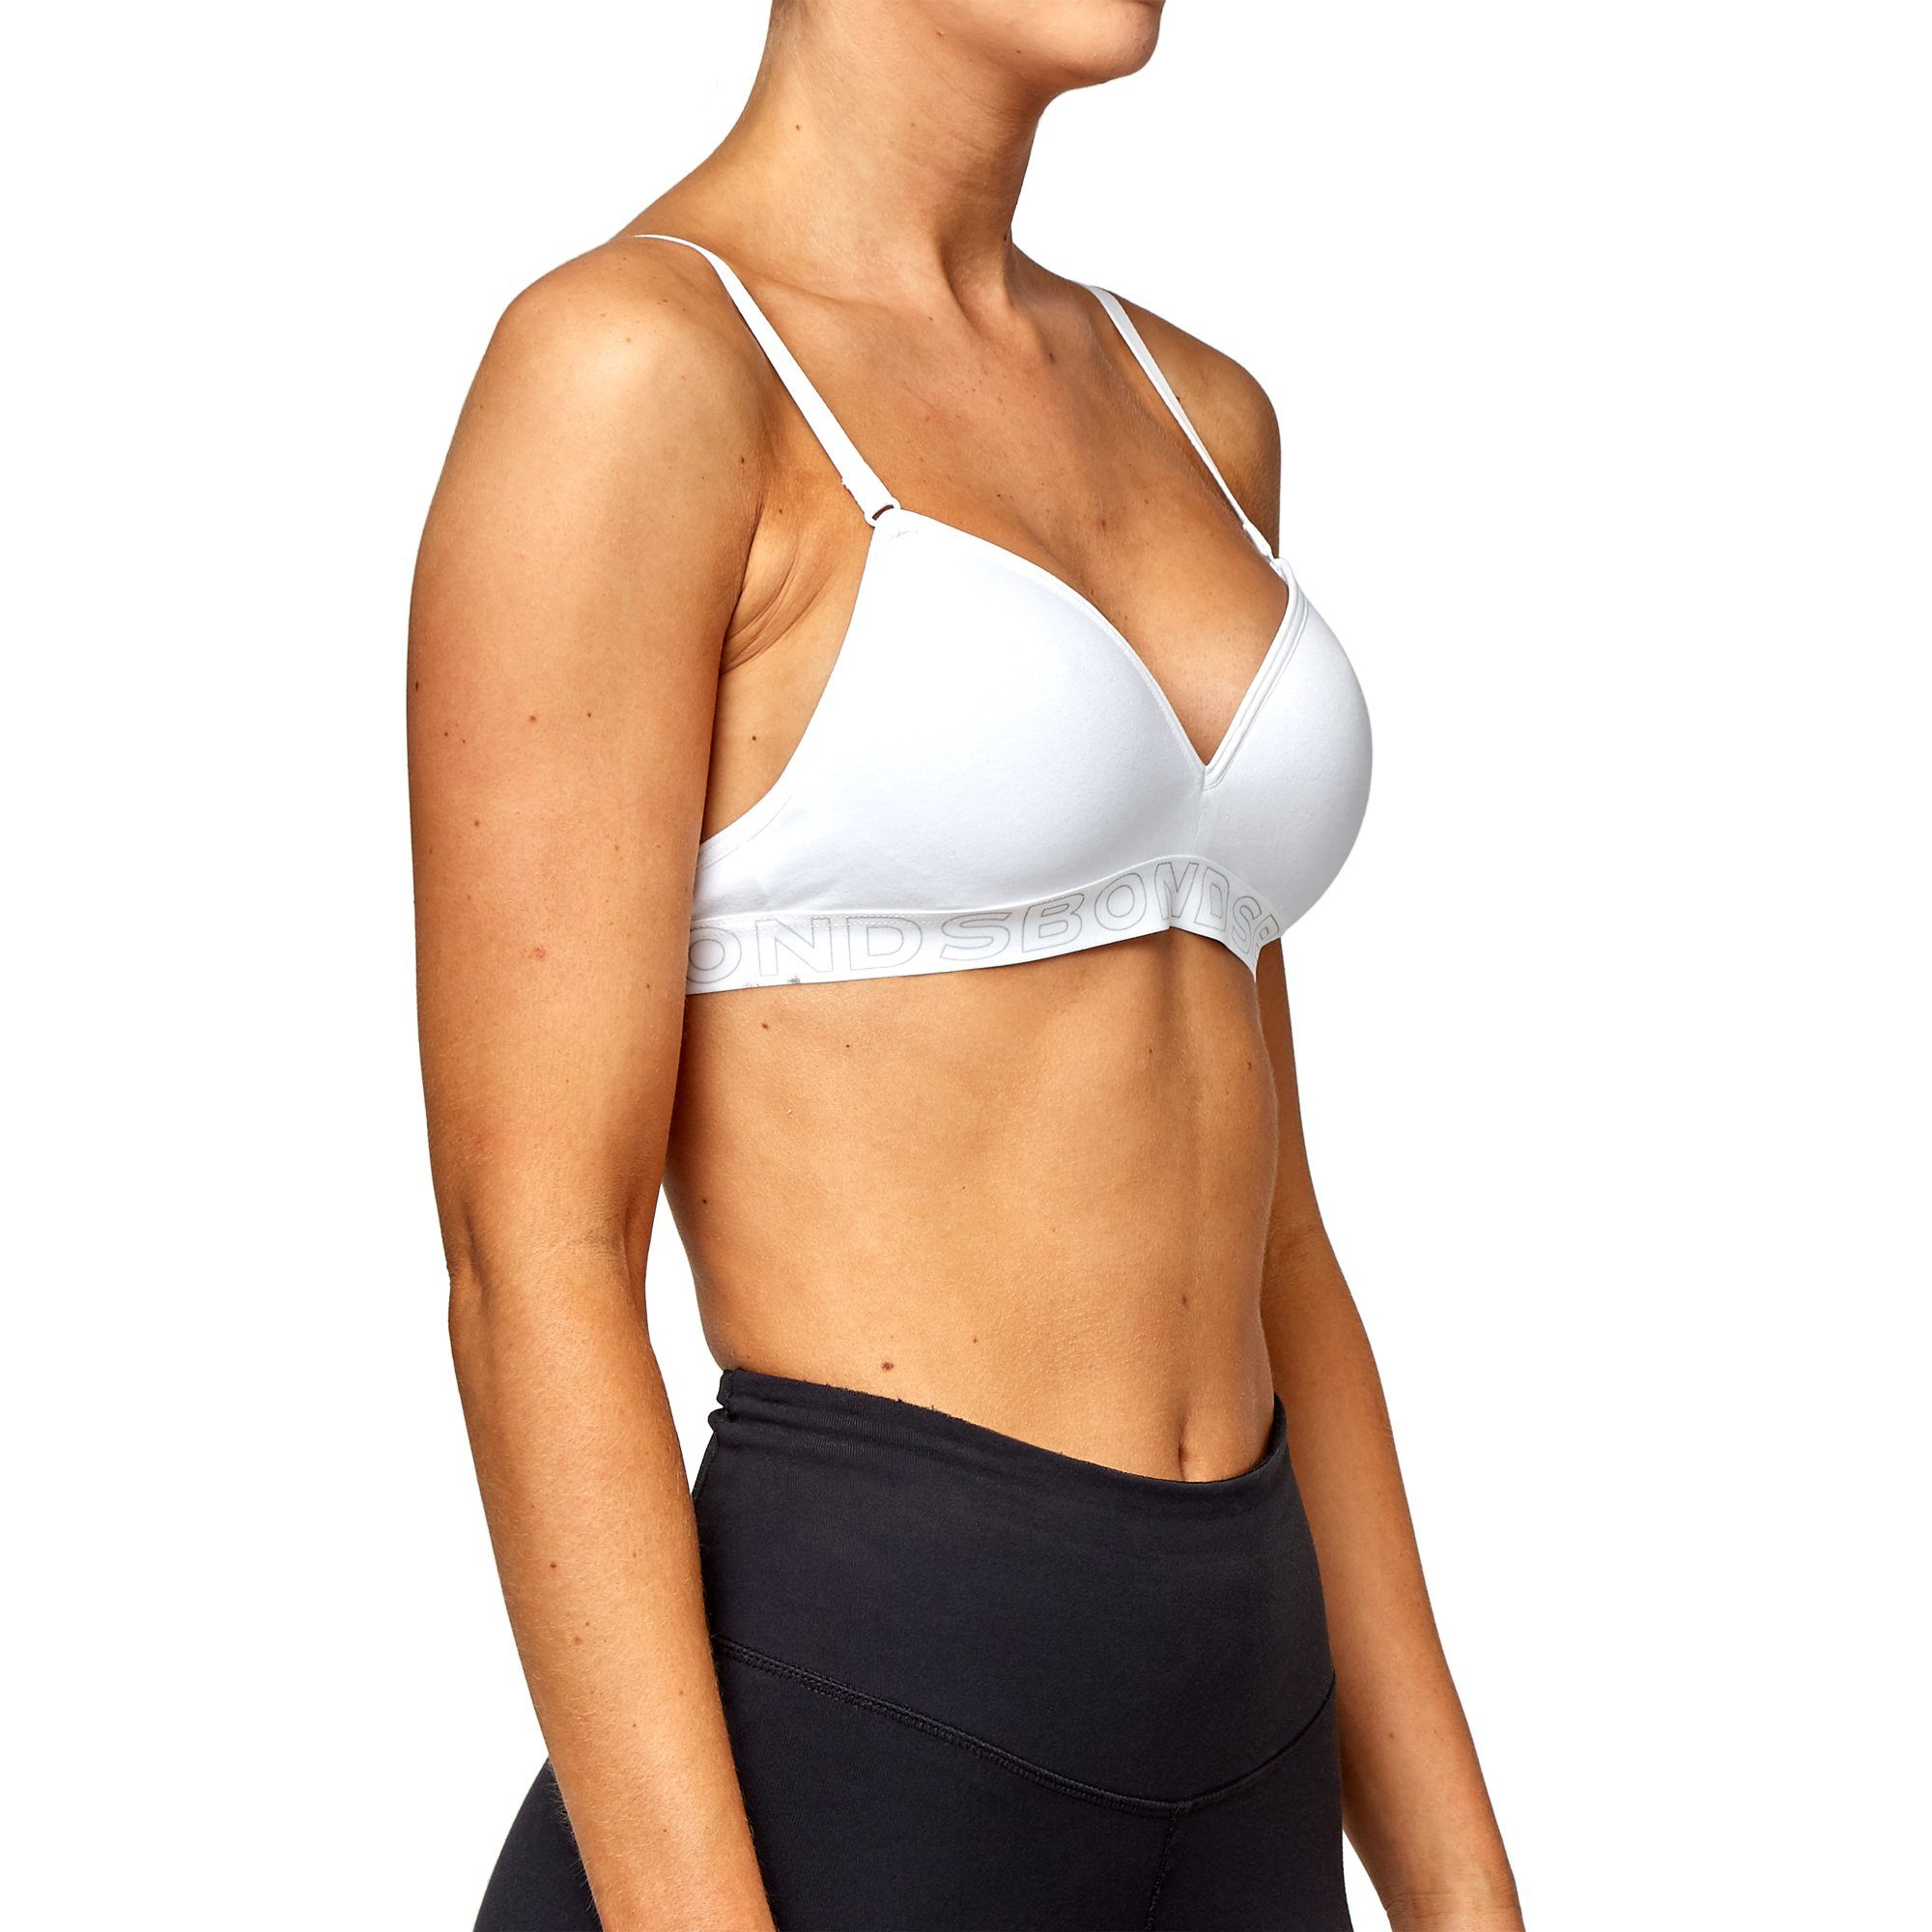 Bonds Bras Flex It - White Bras Bonds